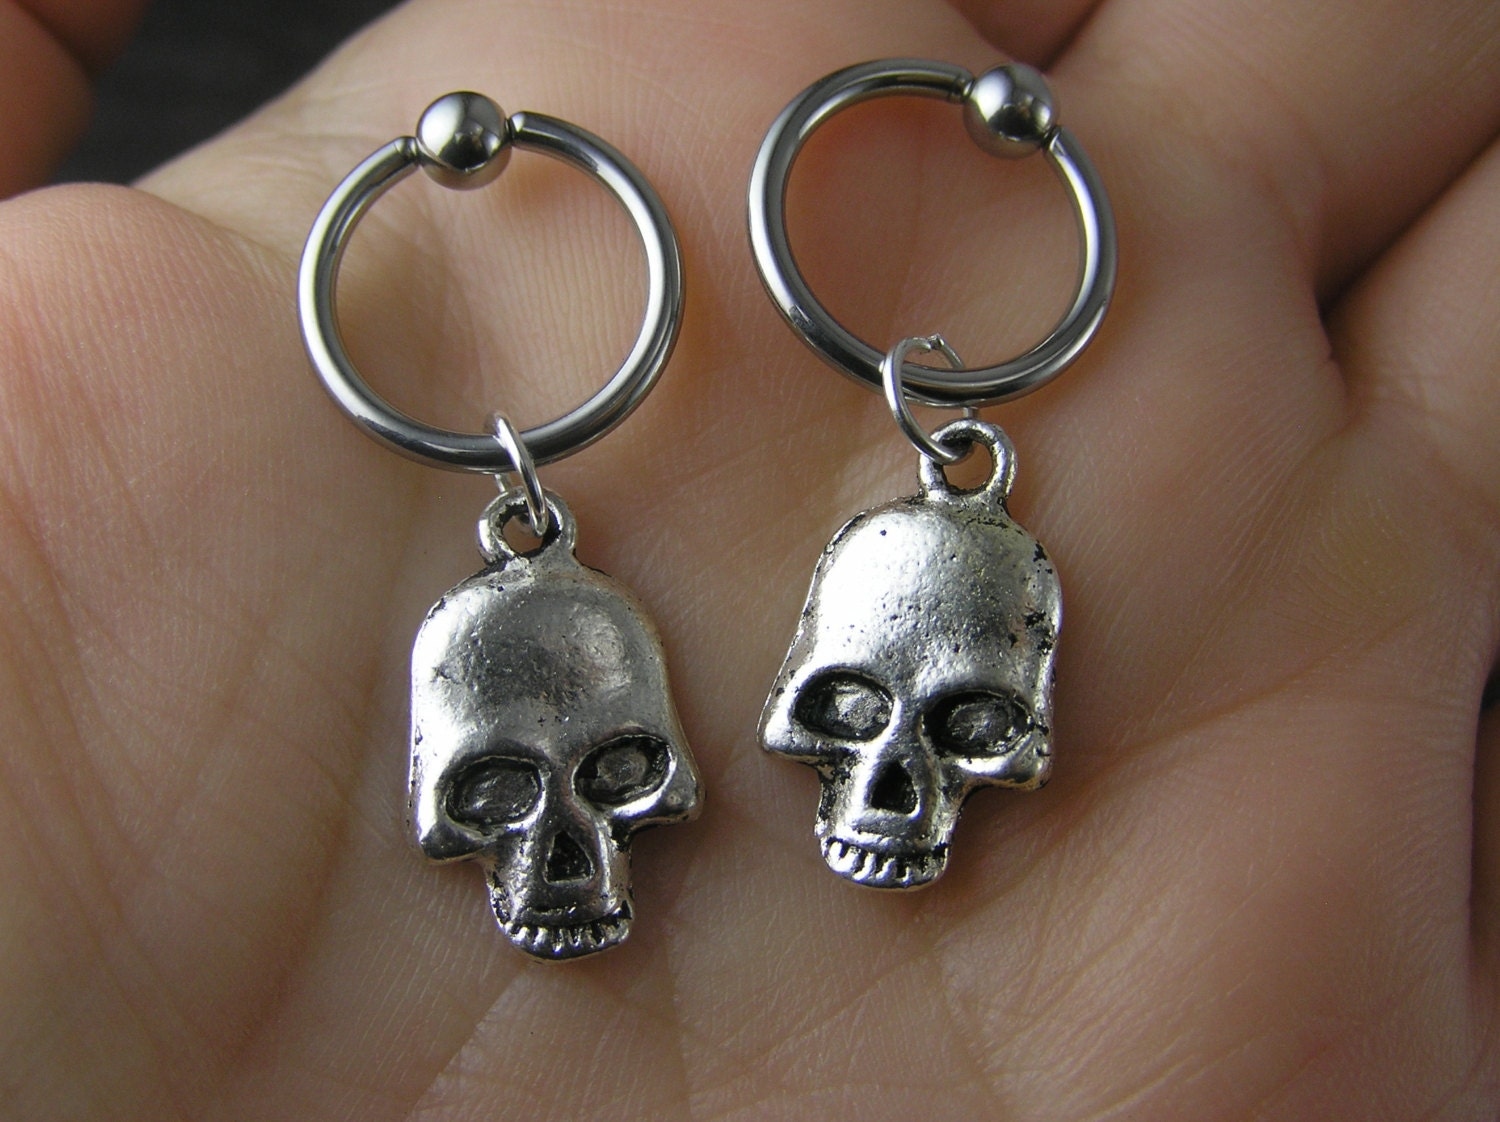 captive bead earrings one silver skull captive bead ring earring 12g 14g 16g 18g 2636